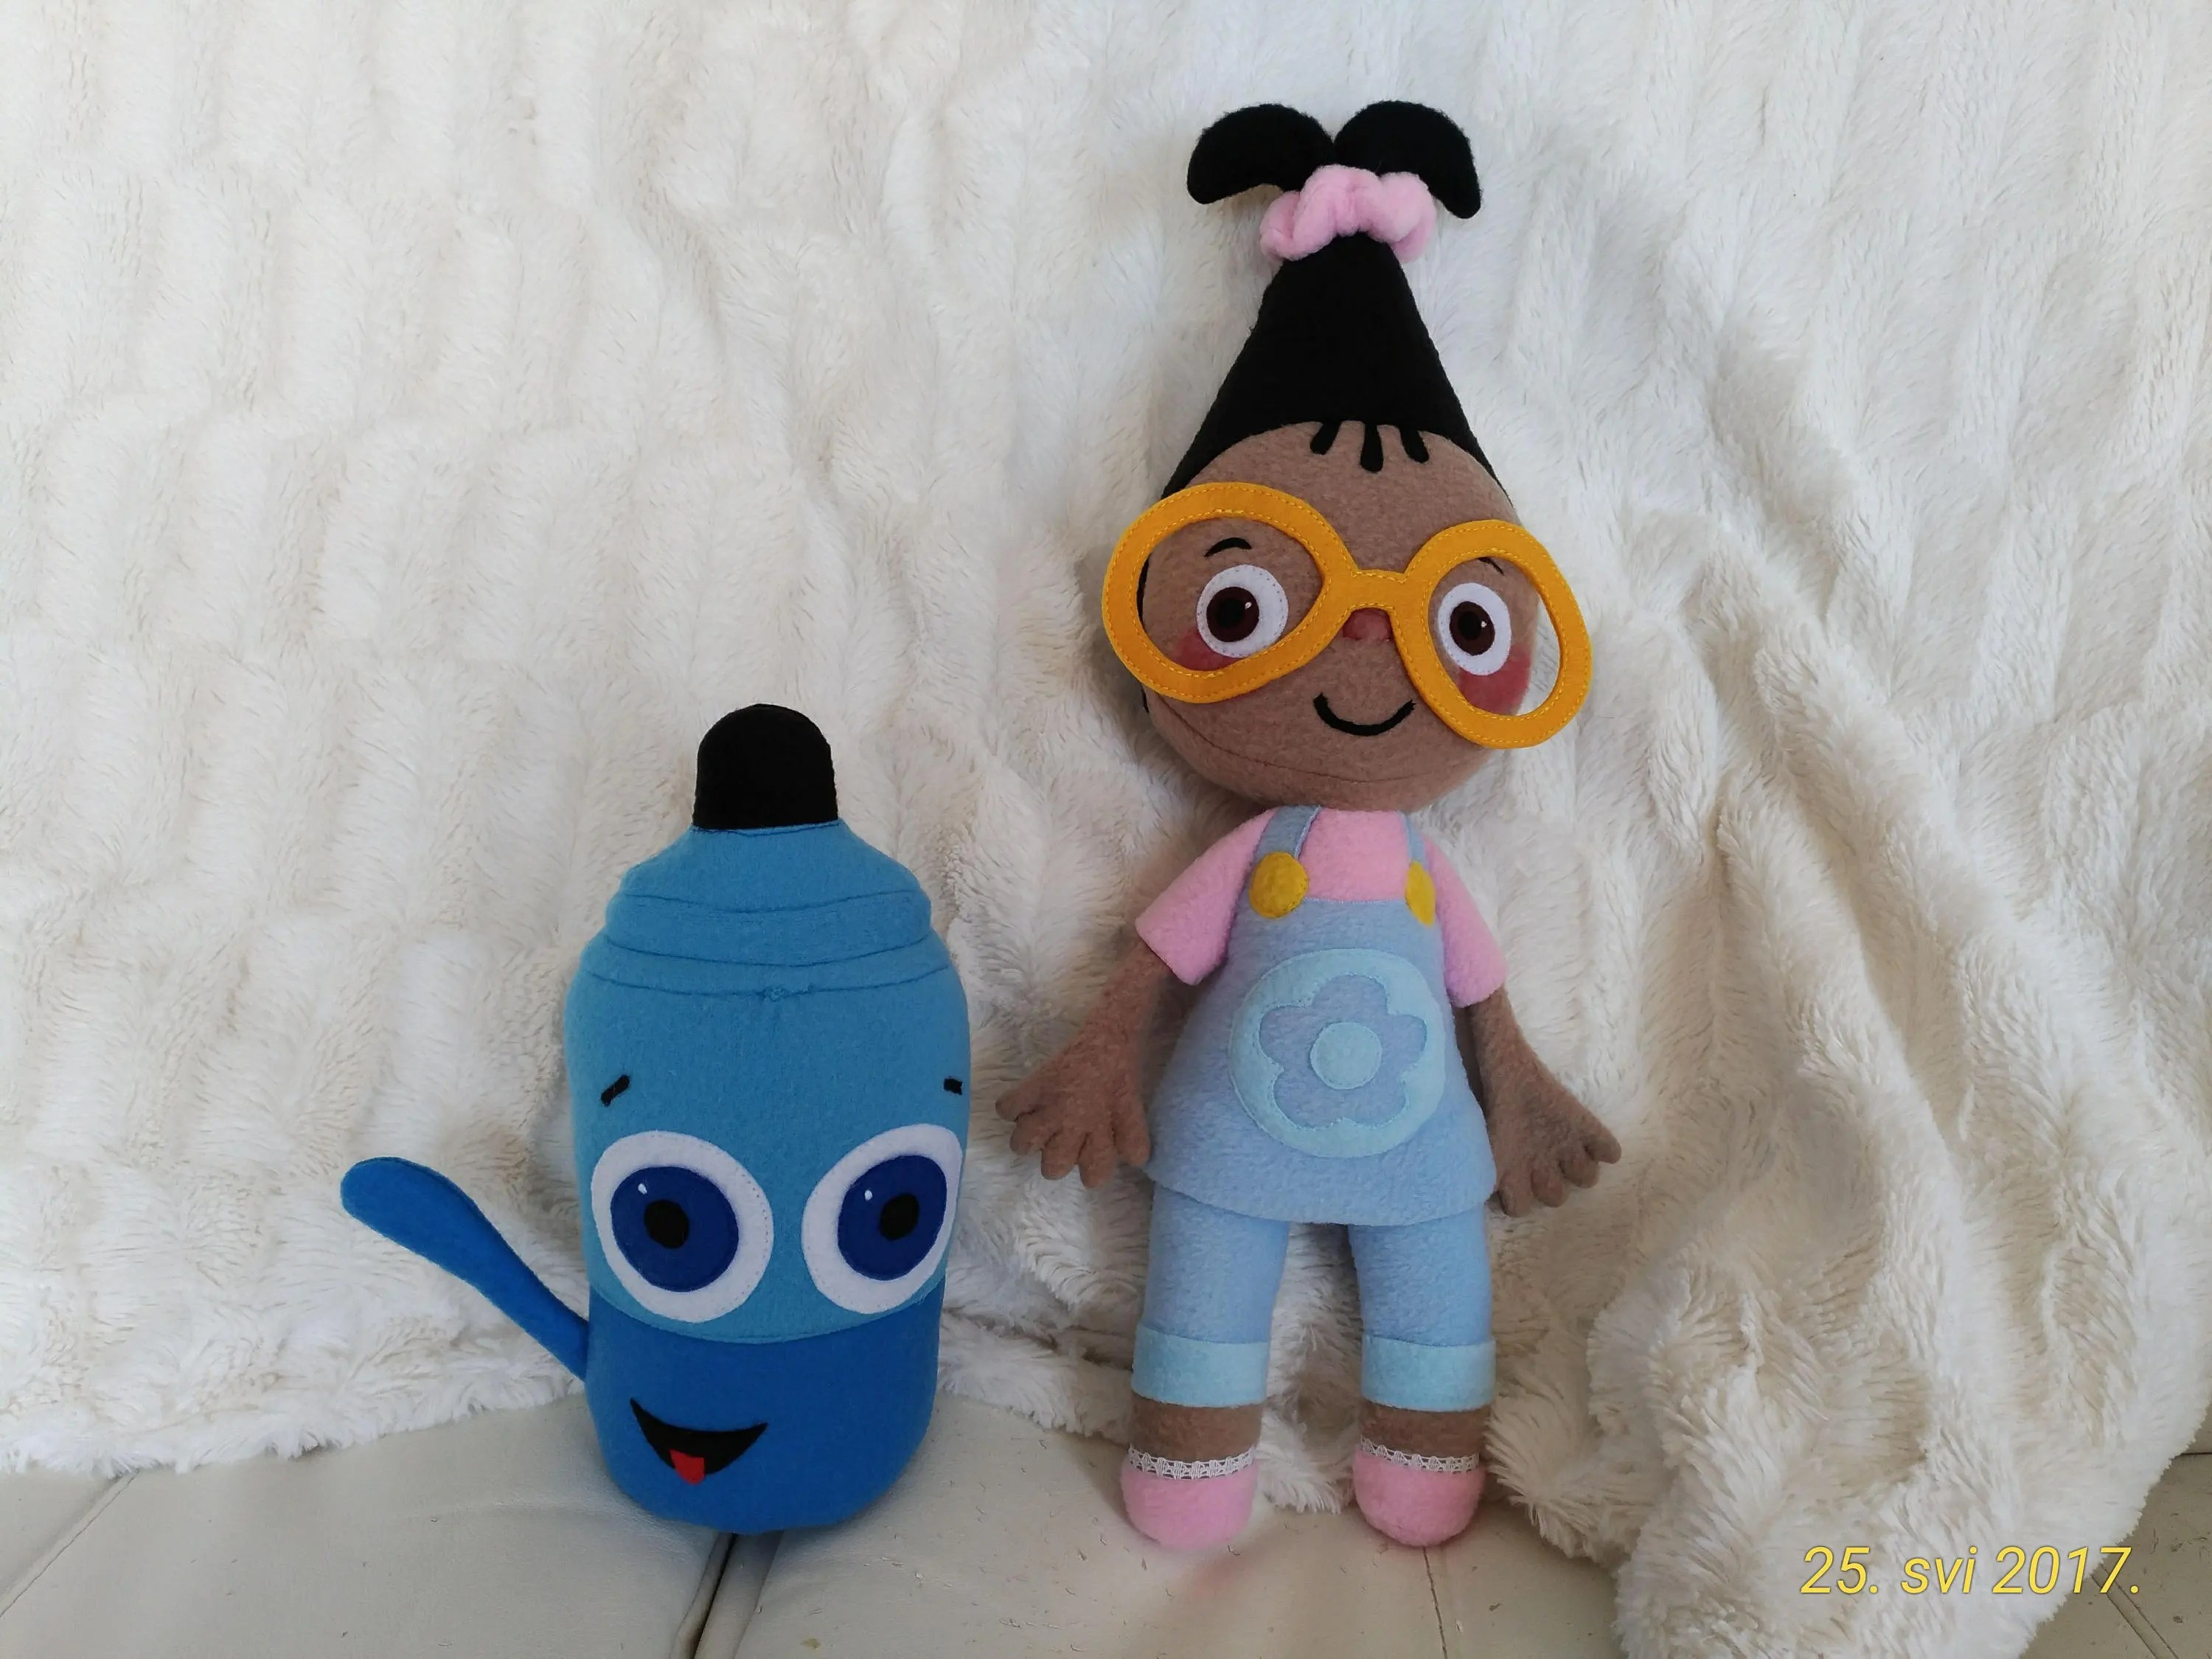 Plush Toys Just Like Mona And Sketch Babytv